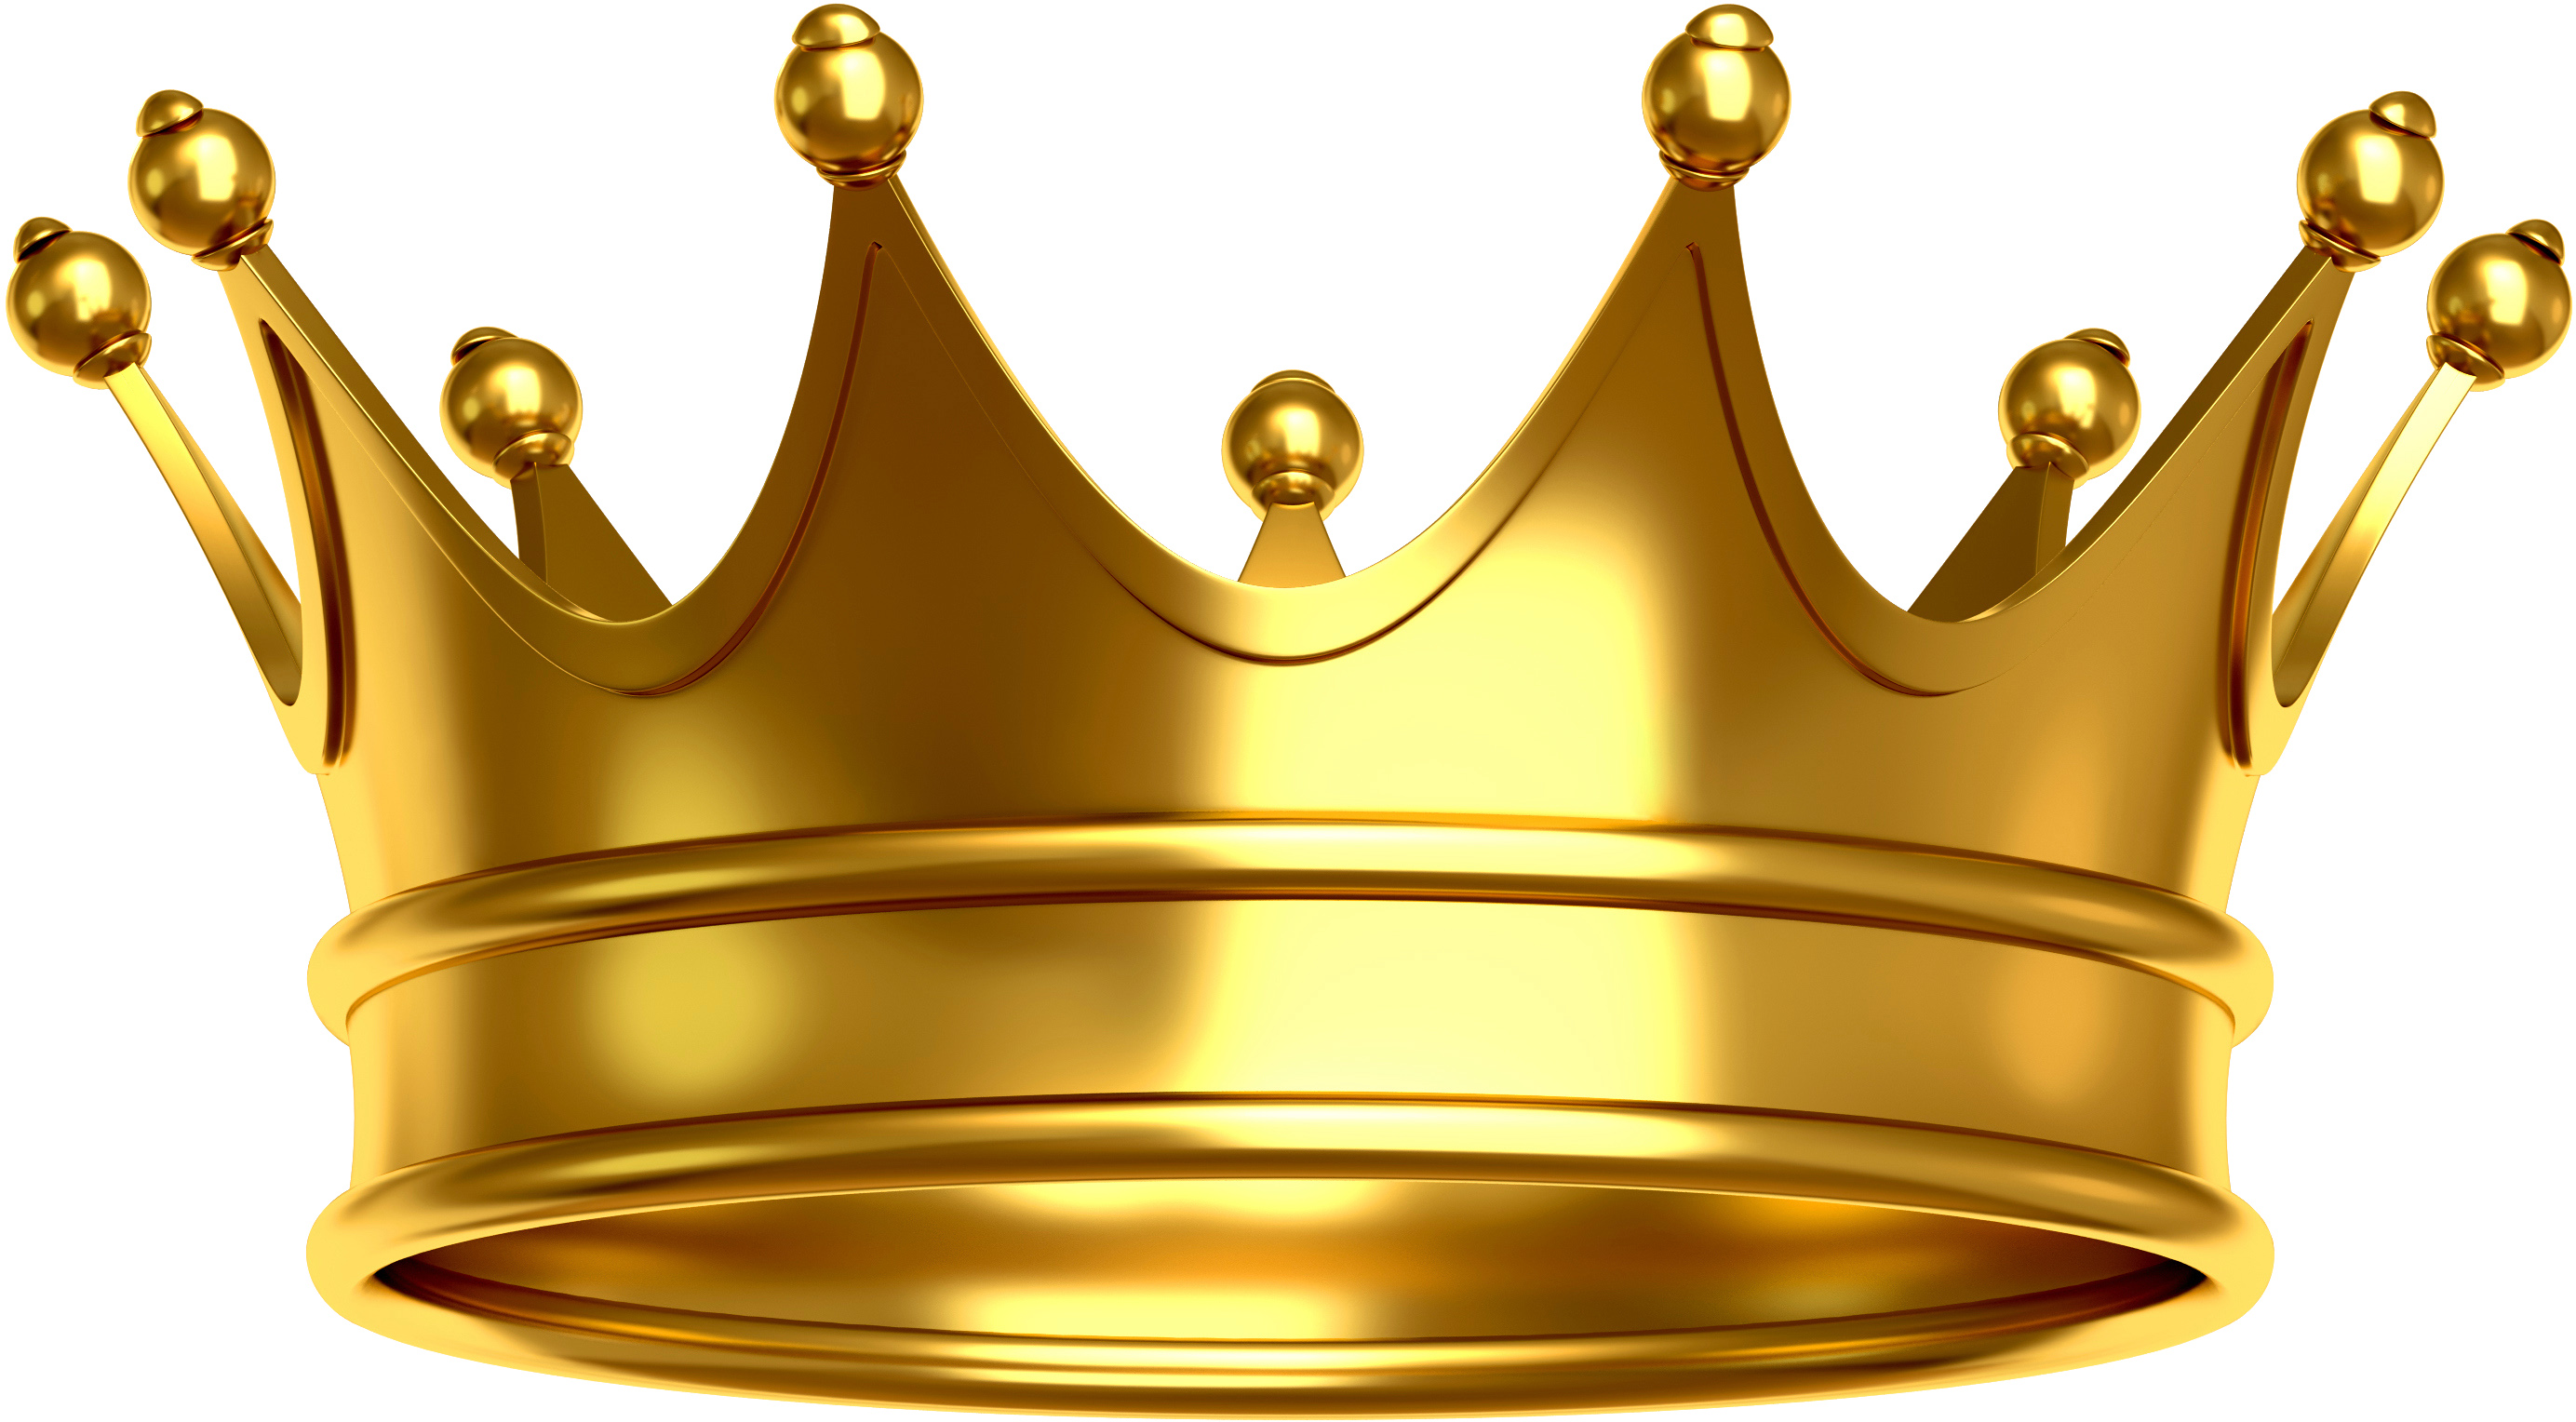 Gold prince crown clipart cliparts and others art inspiration